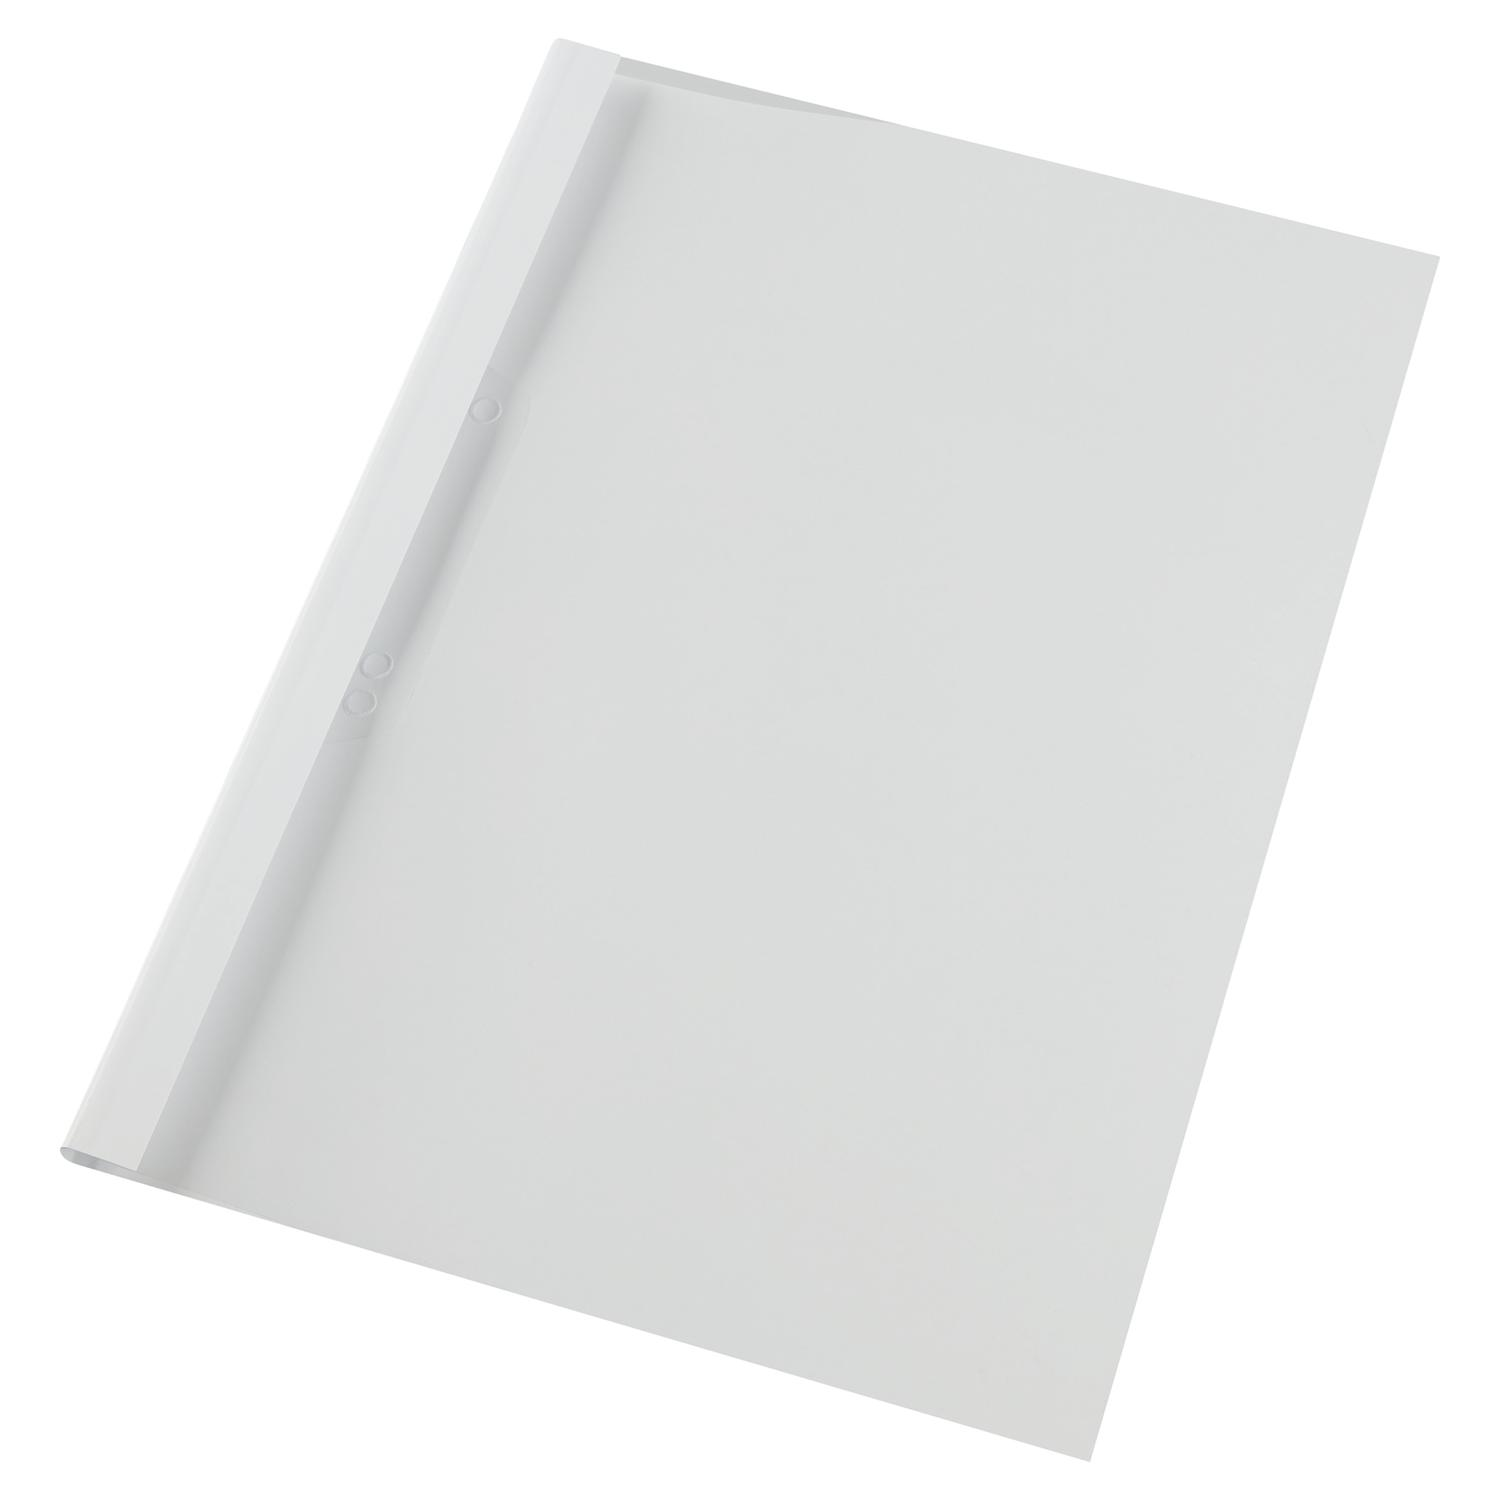 Thermal Bind Covers GBC A4 Thermal Binding Covers 4mm Gloss White PK1000